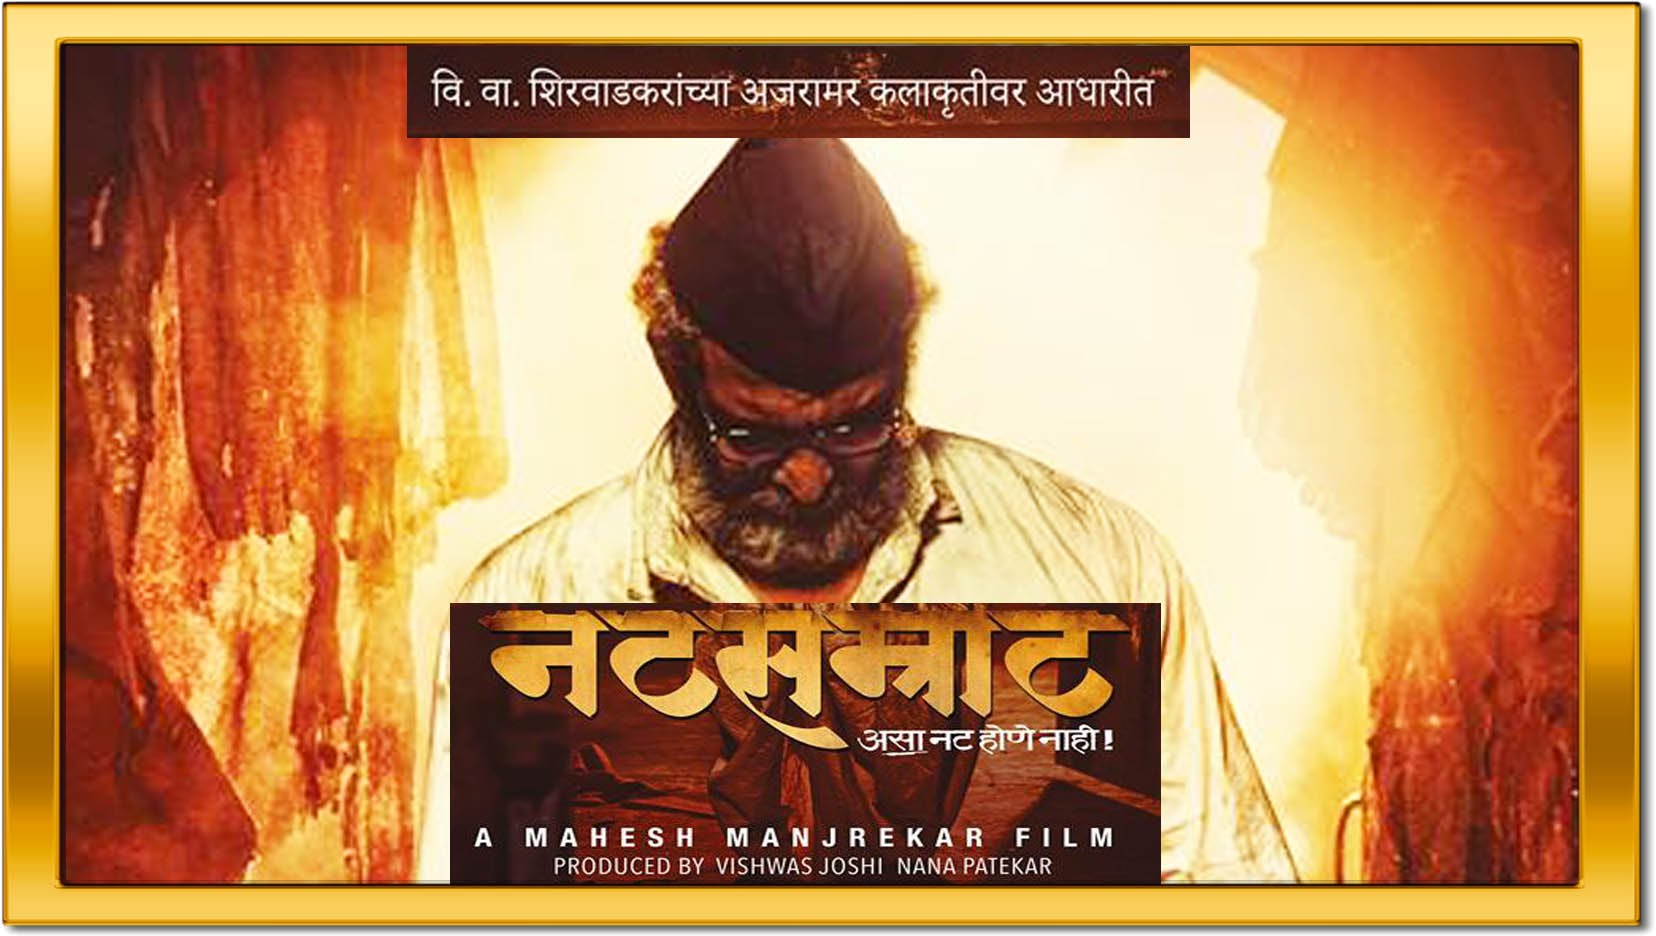 2nd Sunday Marathi Natsamrat Movie 10th Day Box Office Collection